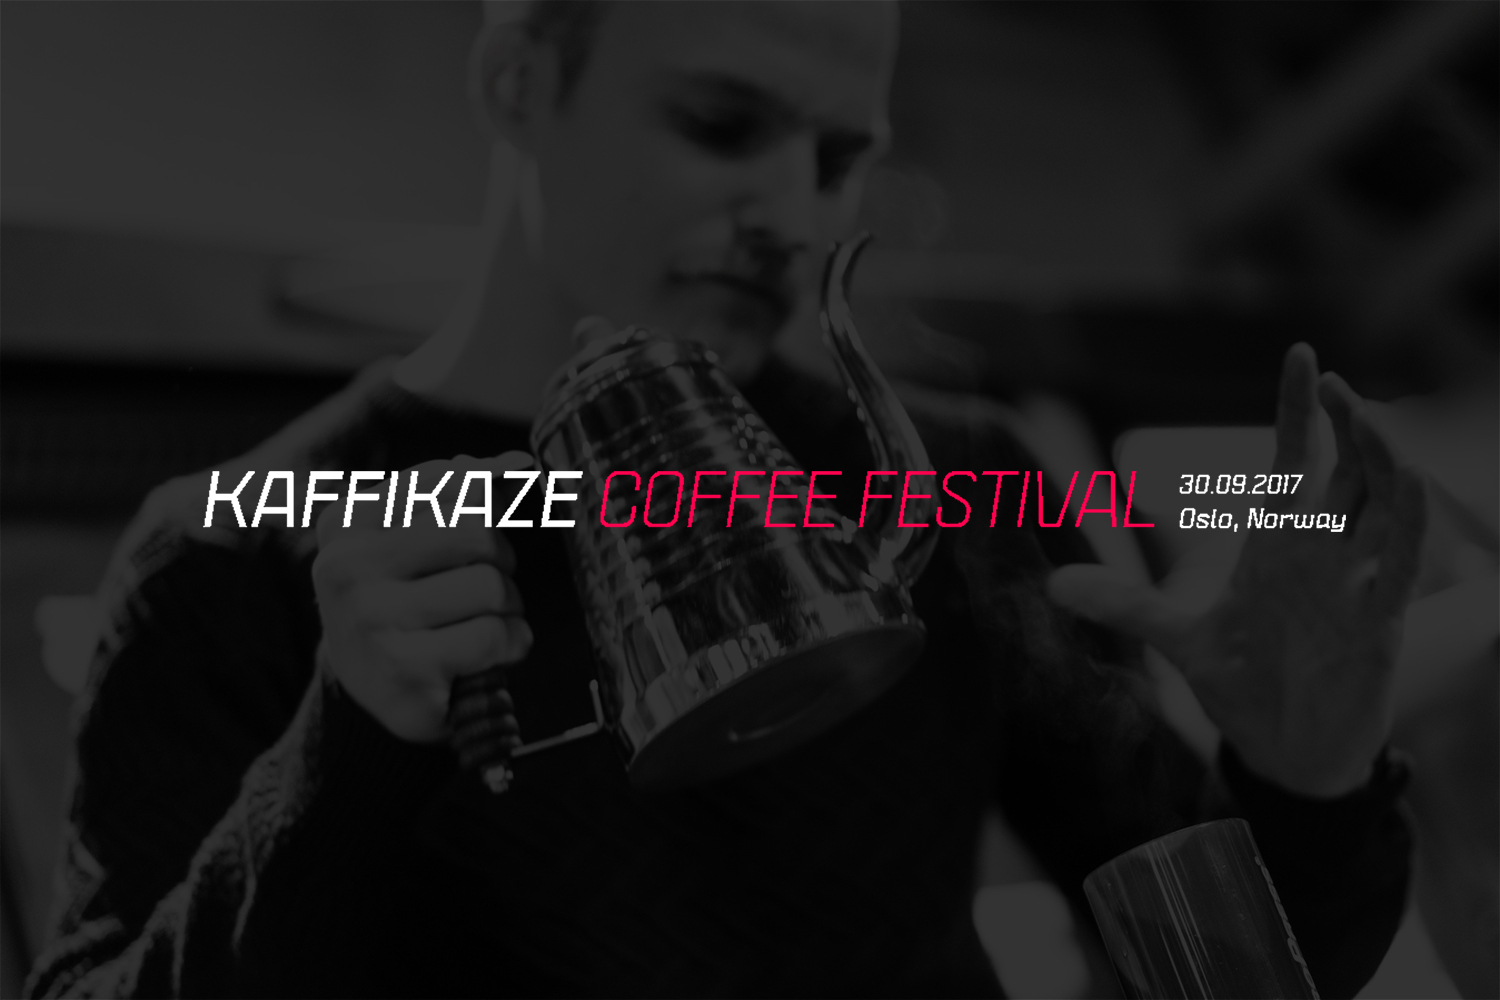 The Kaffikaze Coffee Festival Is Coming To Oslo, Norway photo